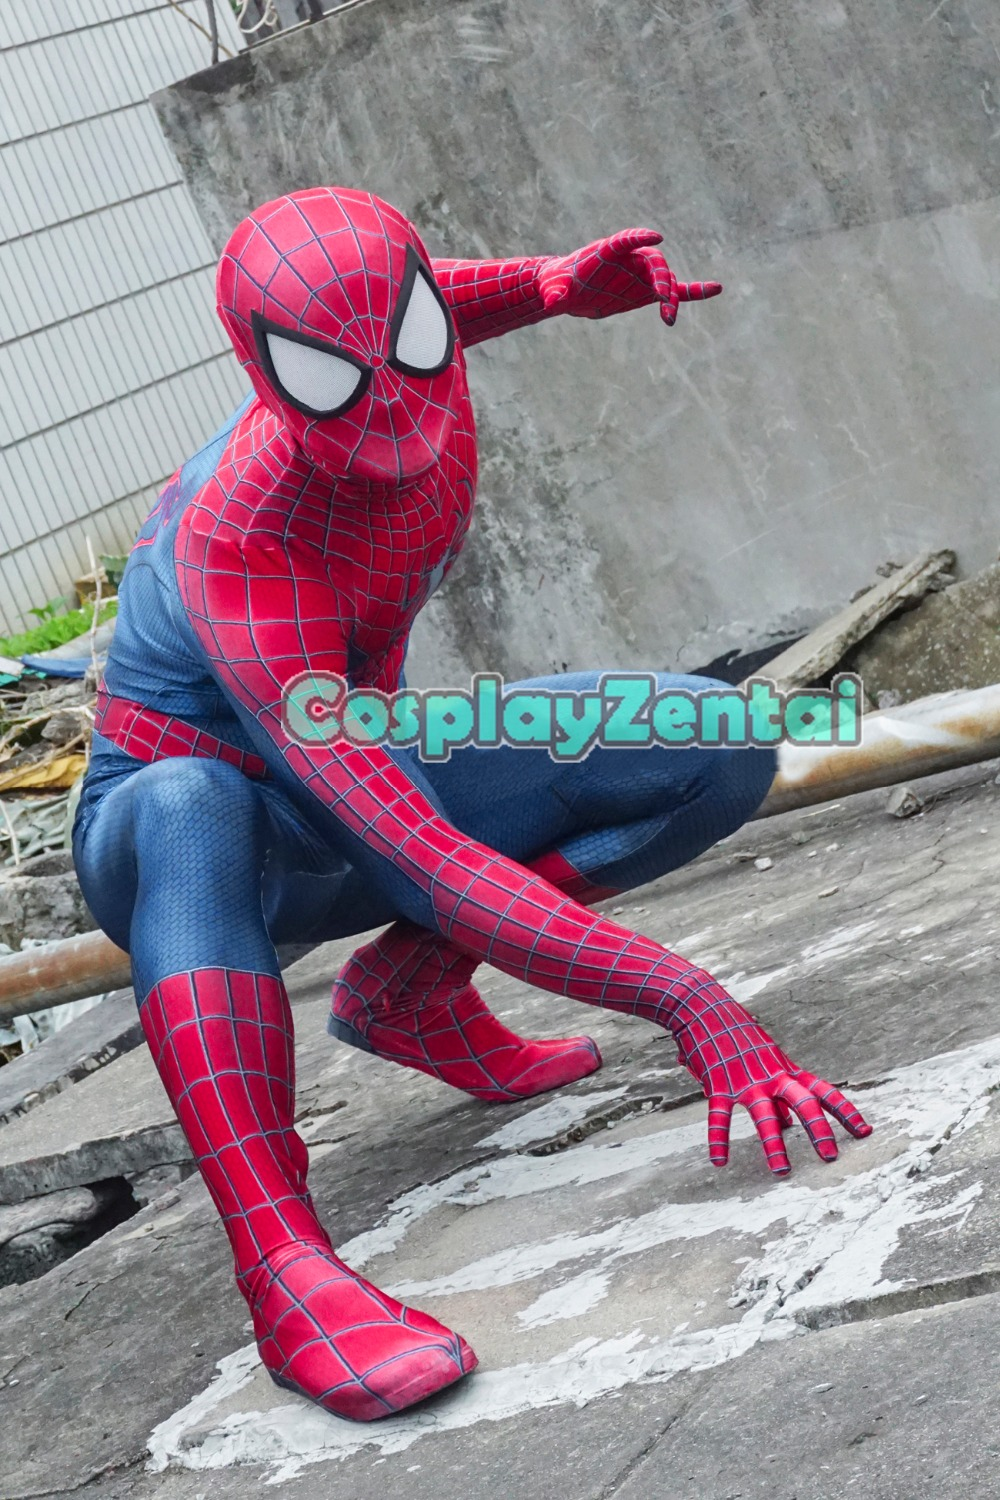 3D Printed Amazing Spiderman 2 Cosplay Costume Spiderman Costume Spandex Zentai Bodysuit Spiderman Superhero Costume